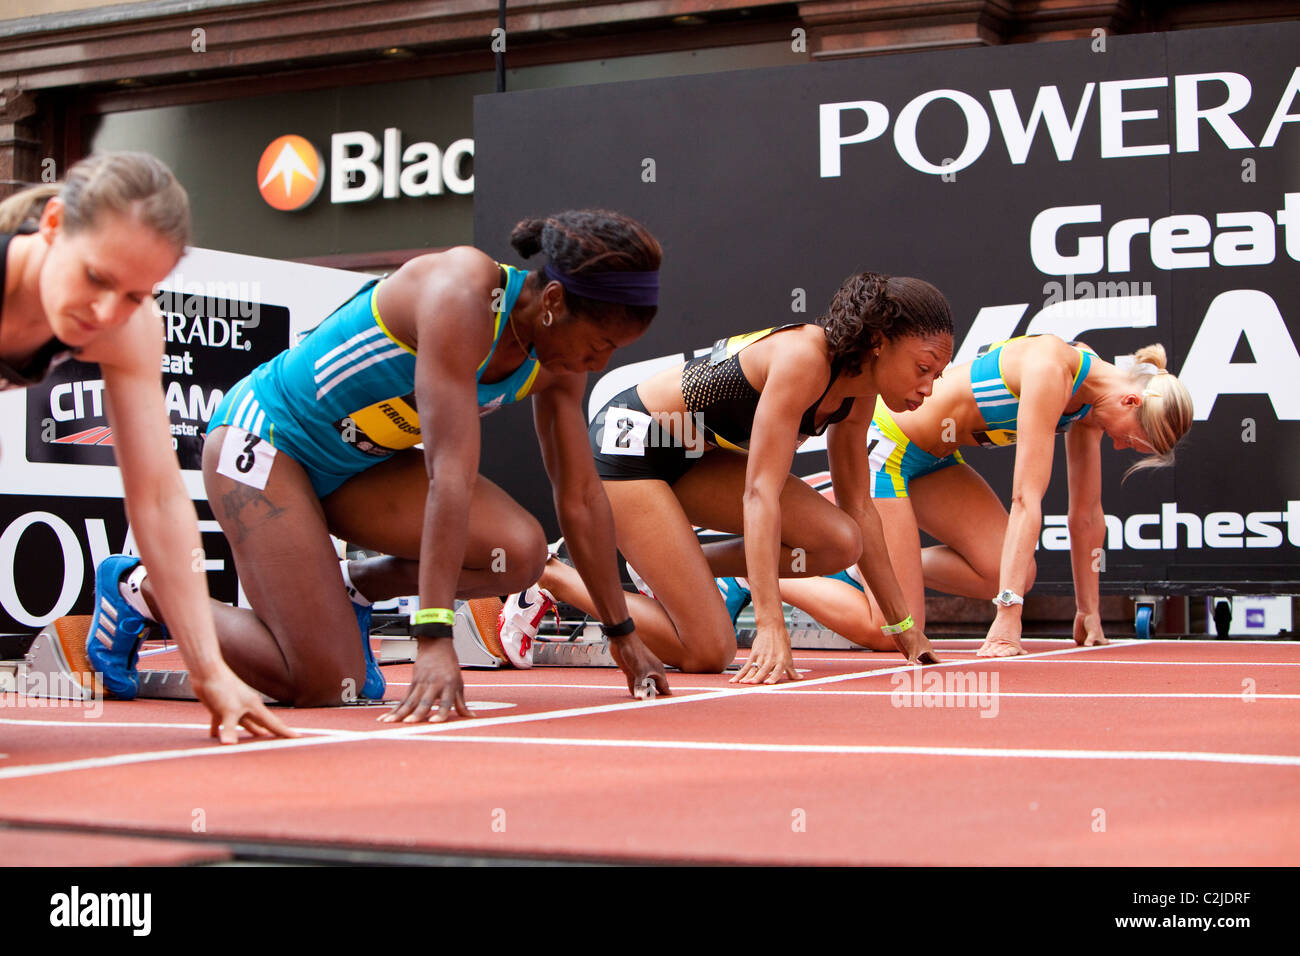 Allyson Felix, Debbie Ferguson and Emily Freeman on the blocks for the 200m at Manchester Great City Games 2010 - Stock Image